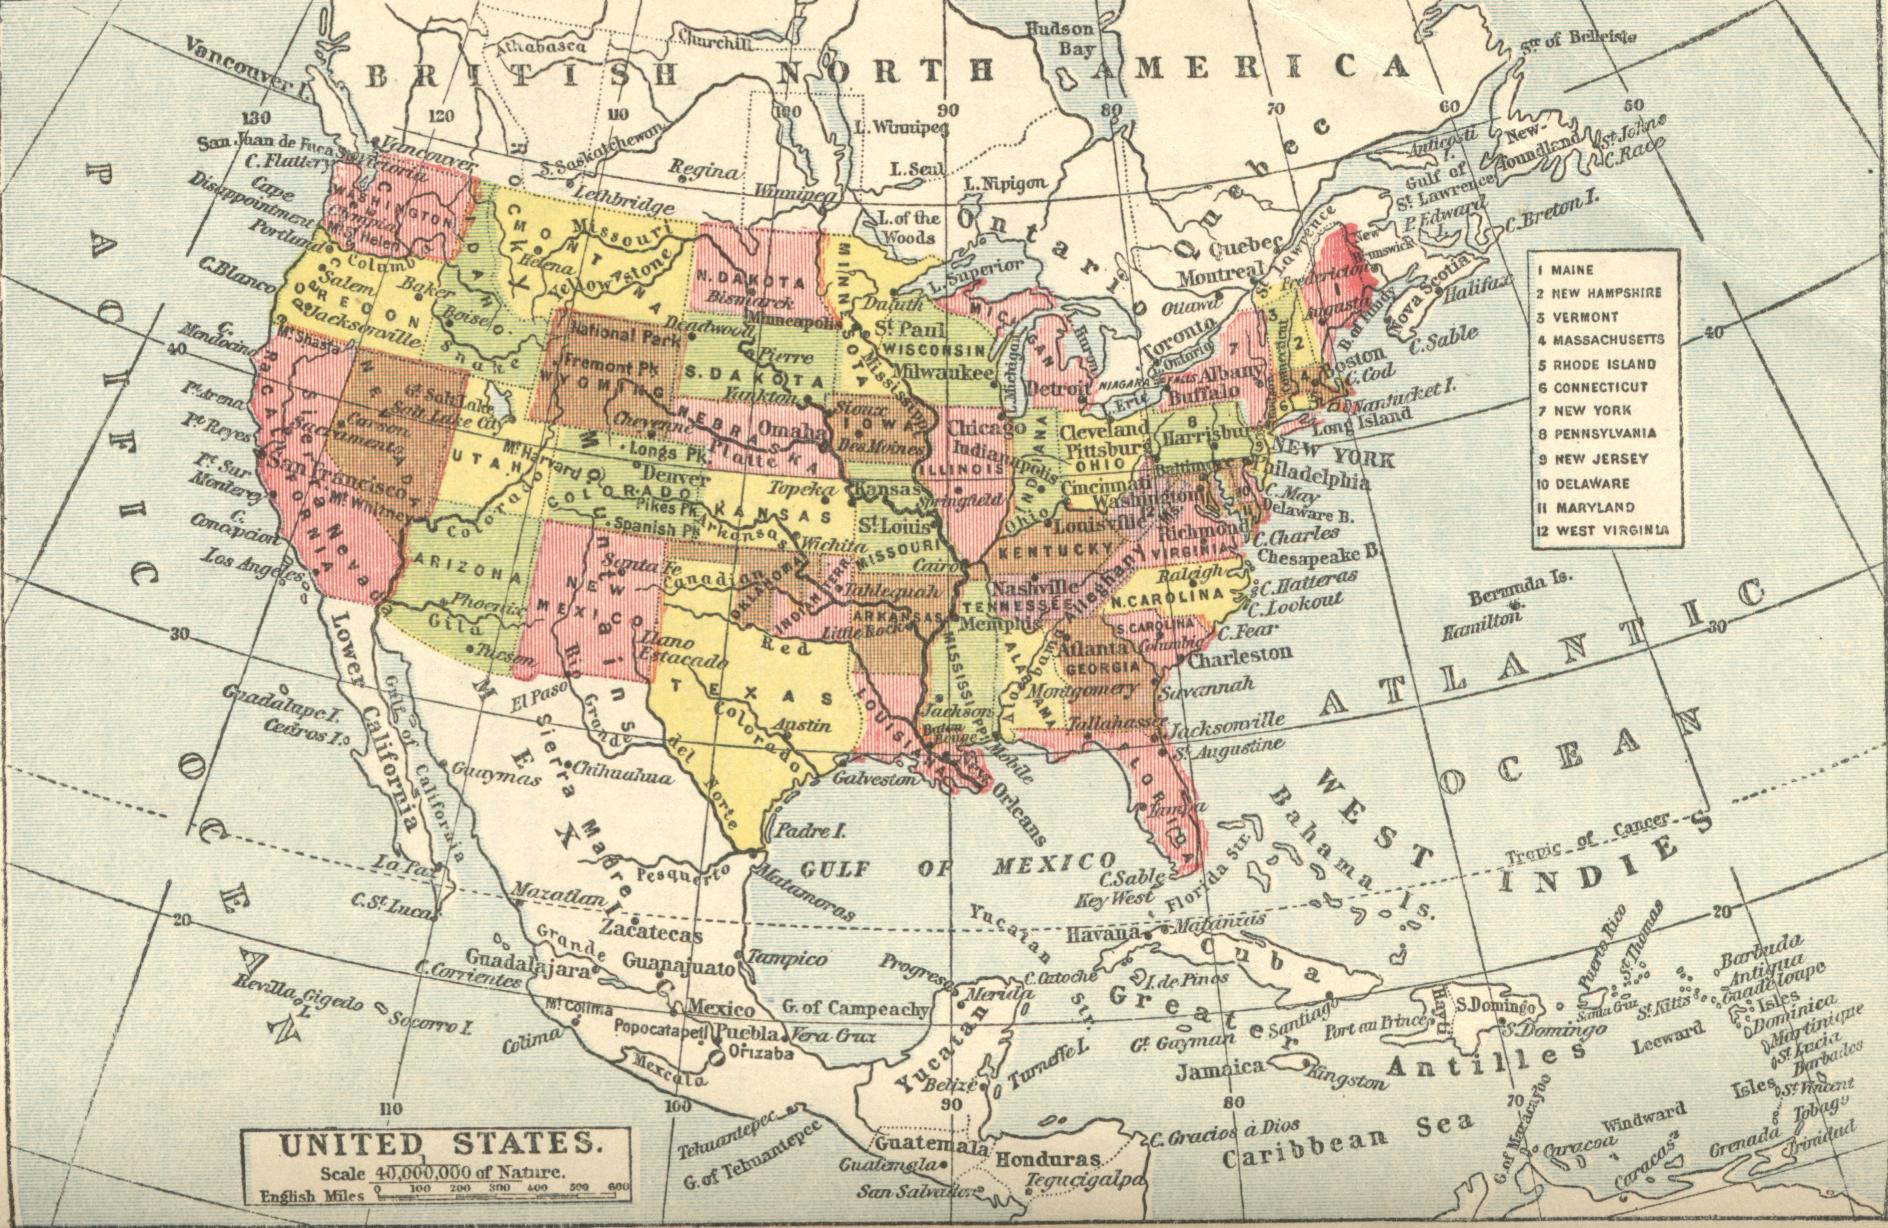 Map Of The United States Of America Also Showing Much Of Canada - Map the united states of america